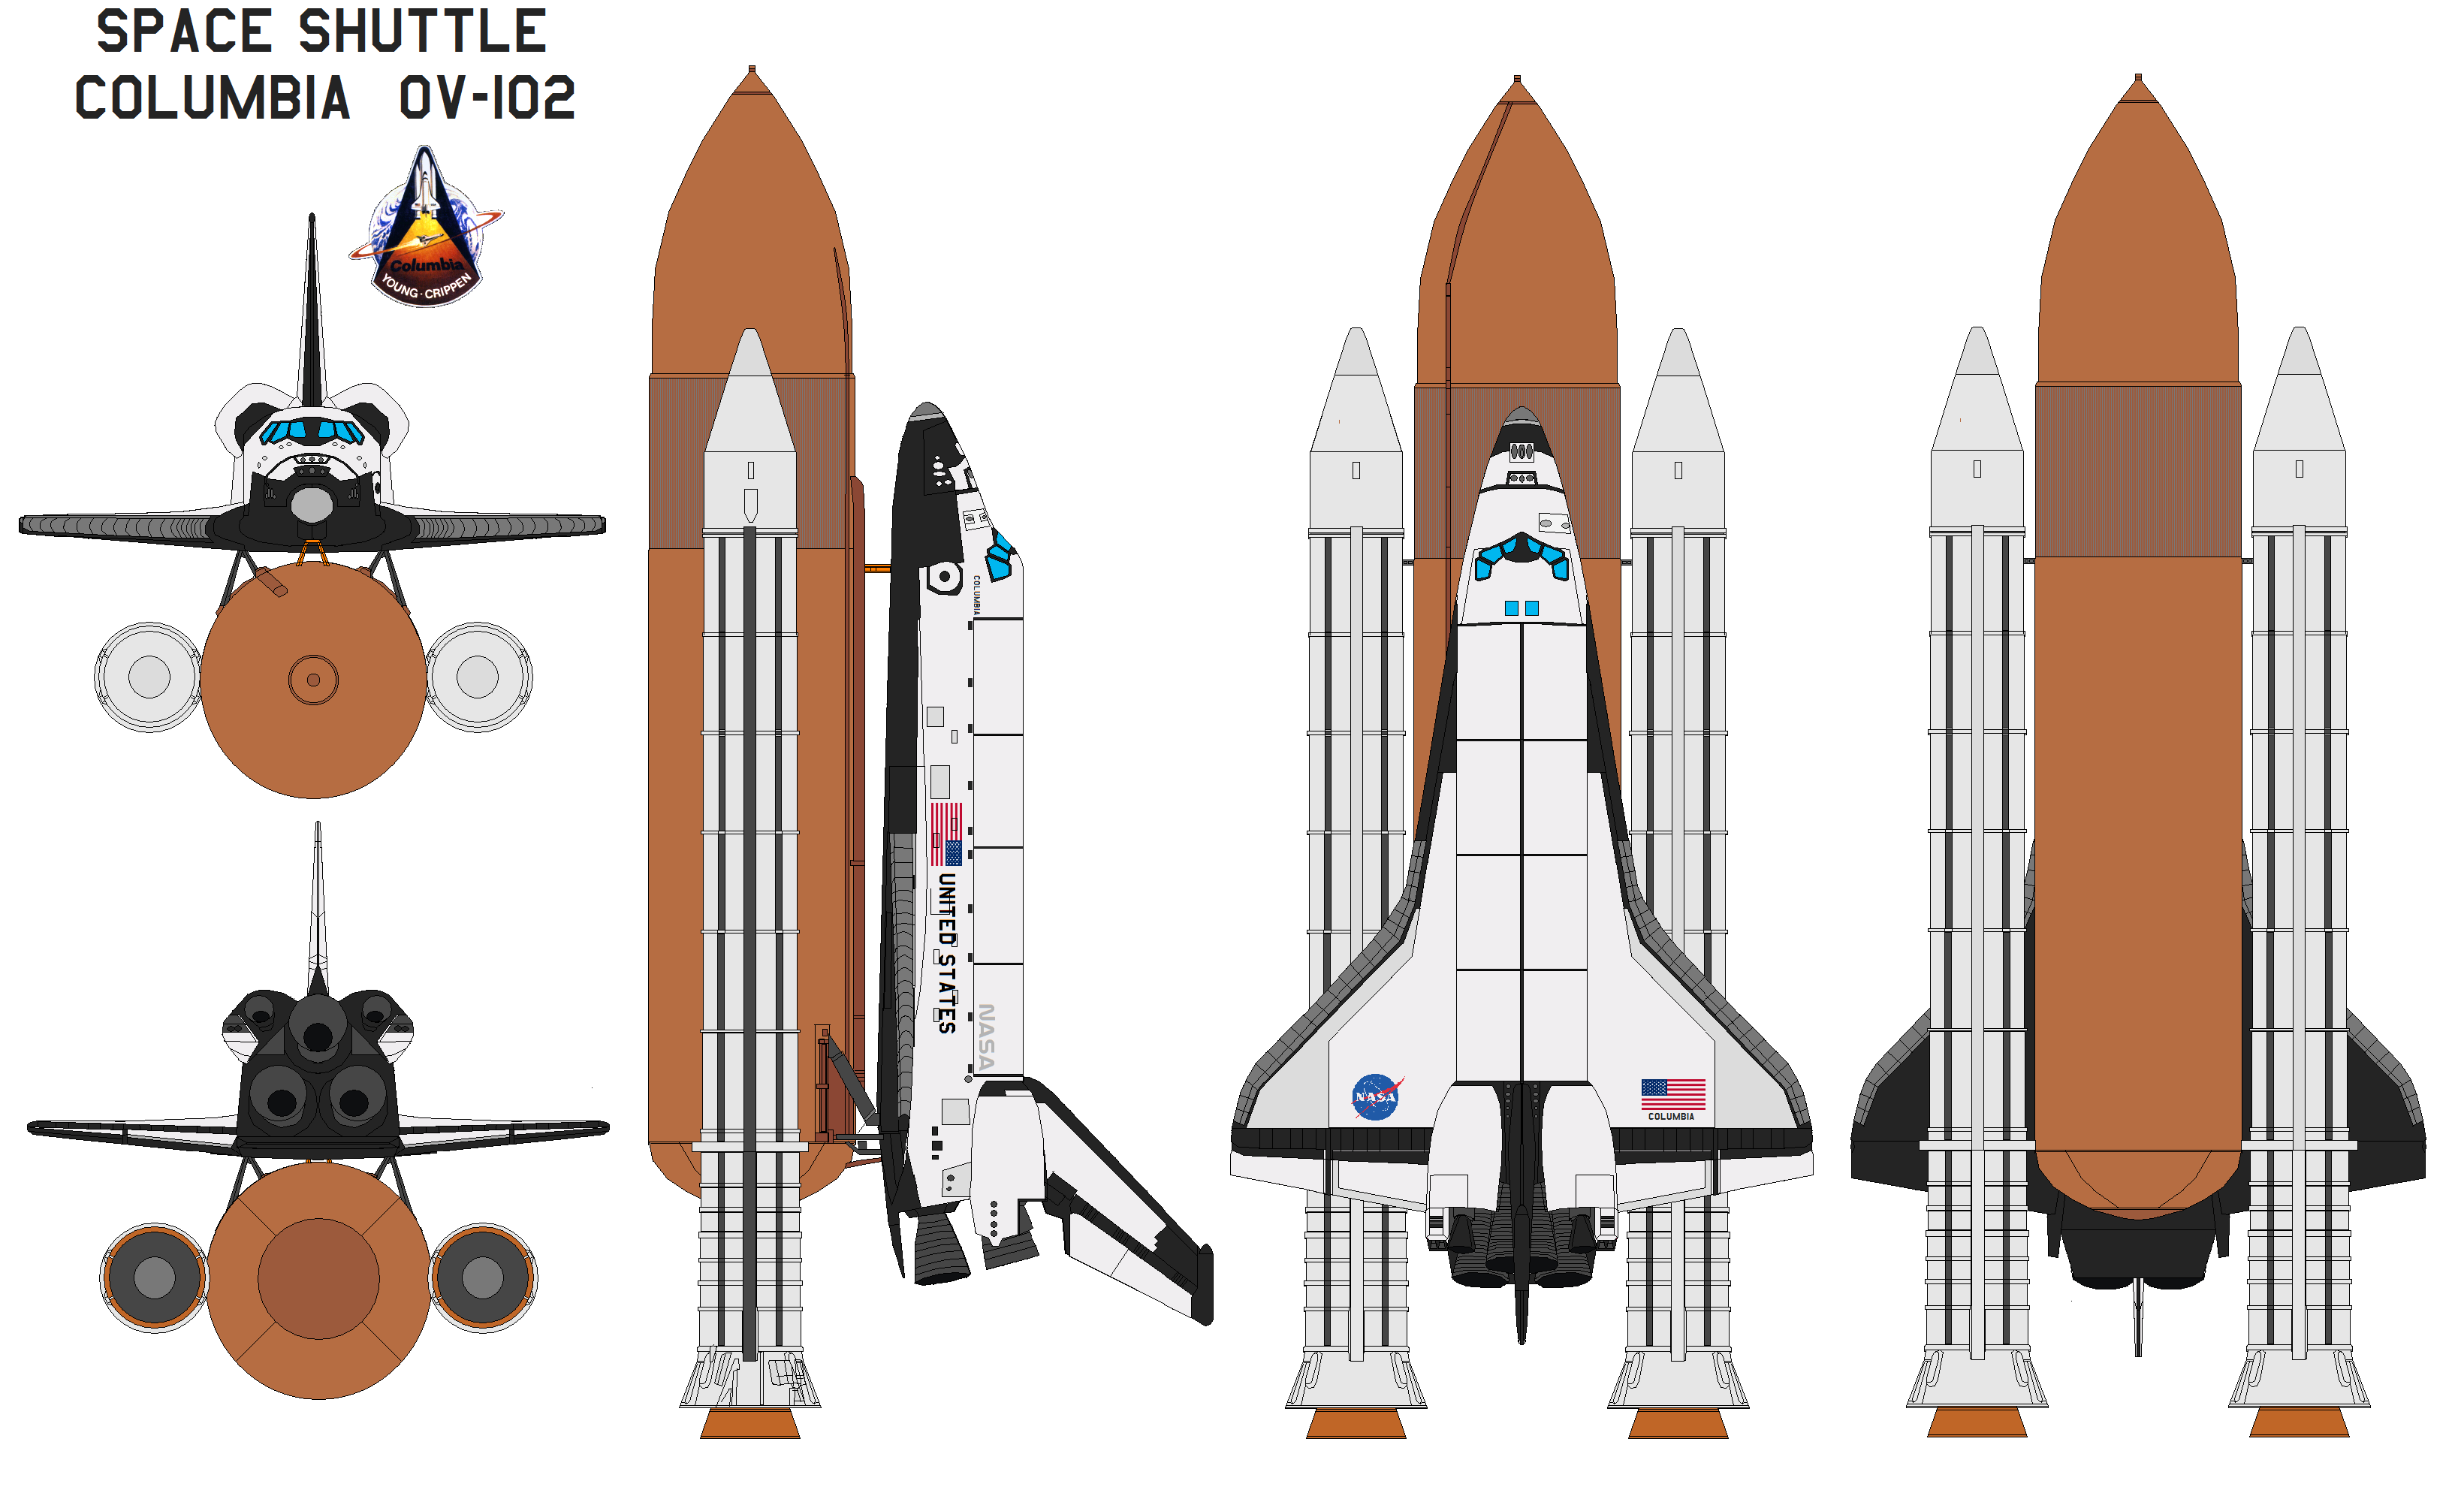 Space Shuttle Columbia OV-102 by bagera3005 on DeviantArt